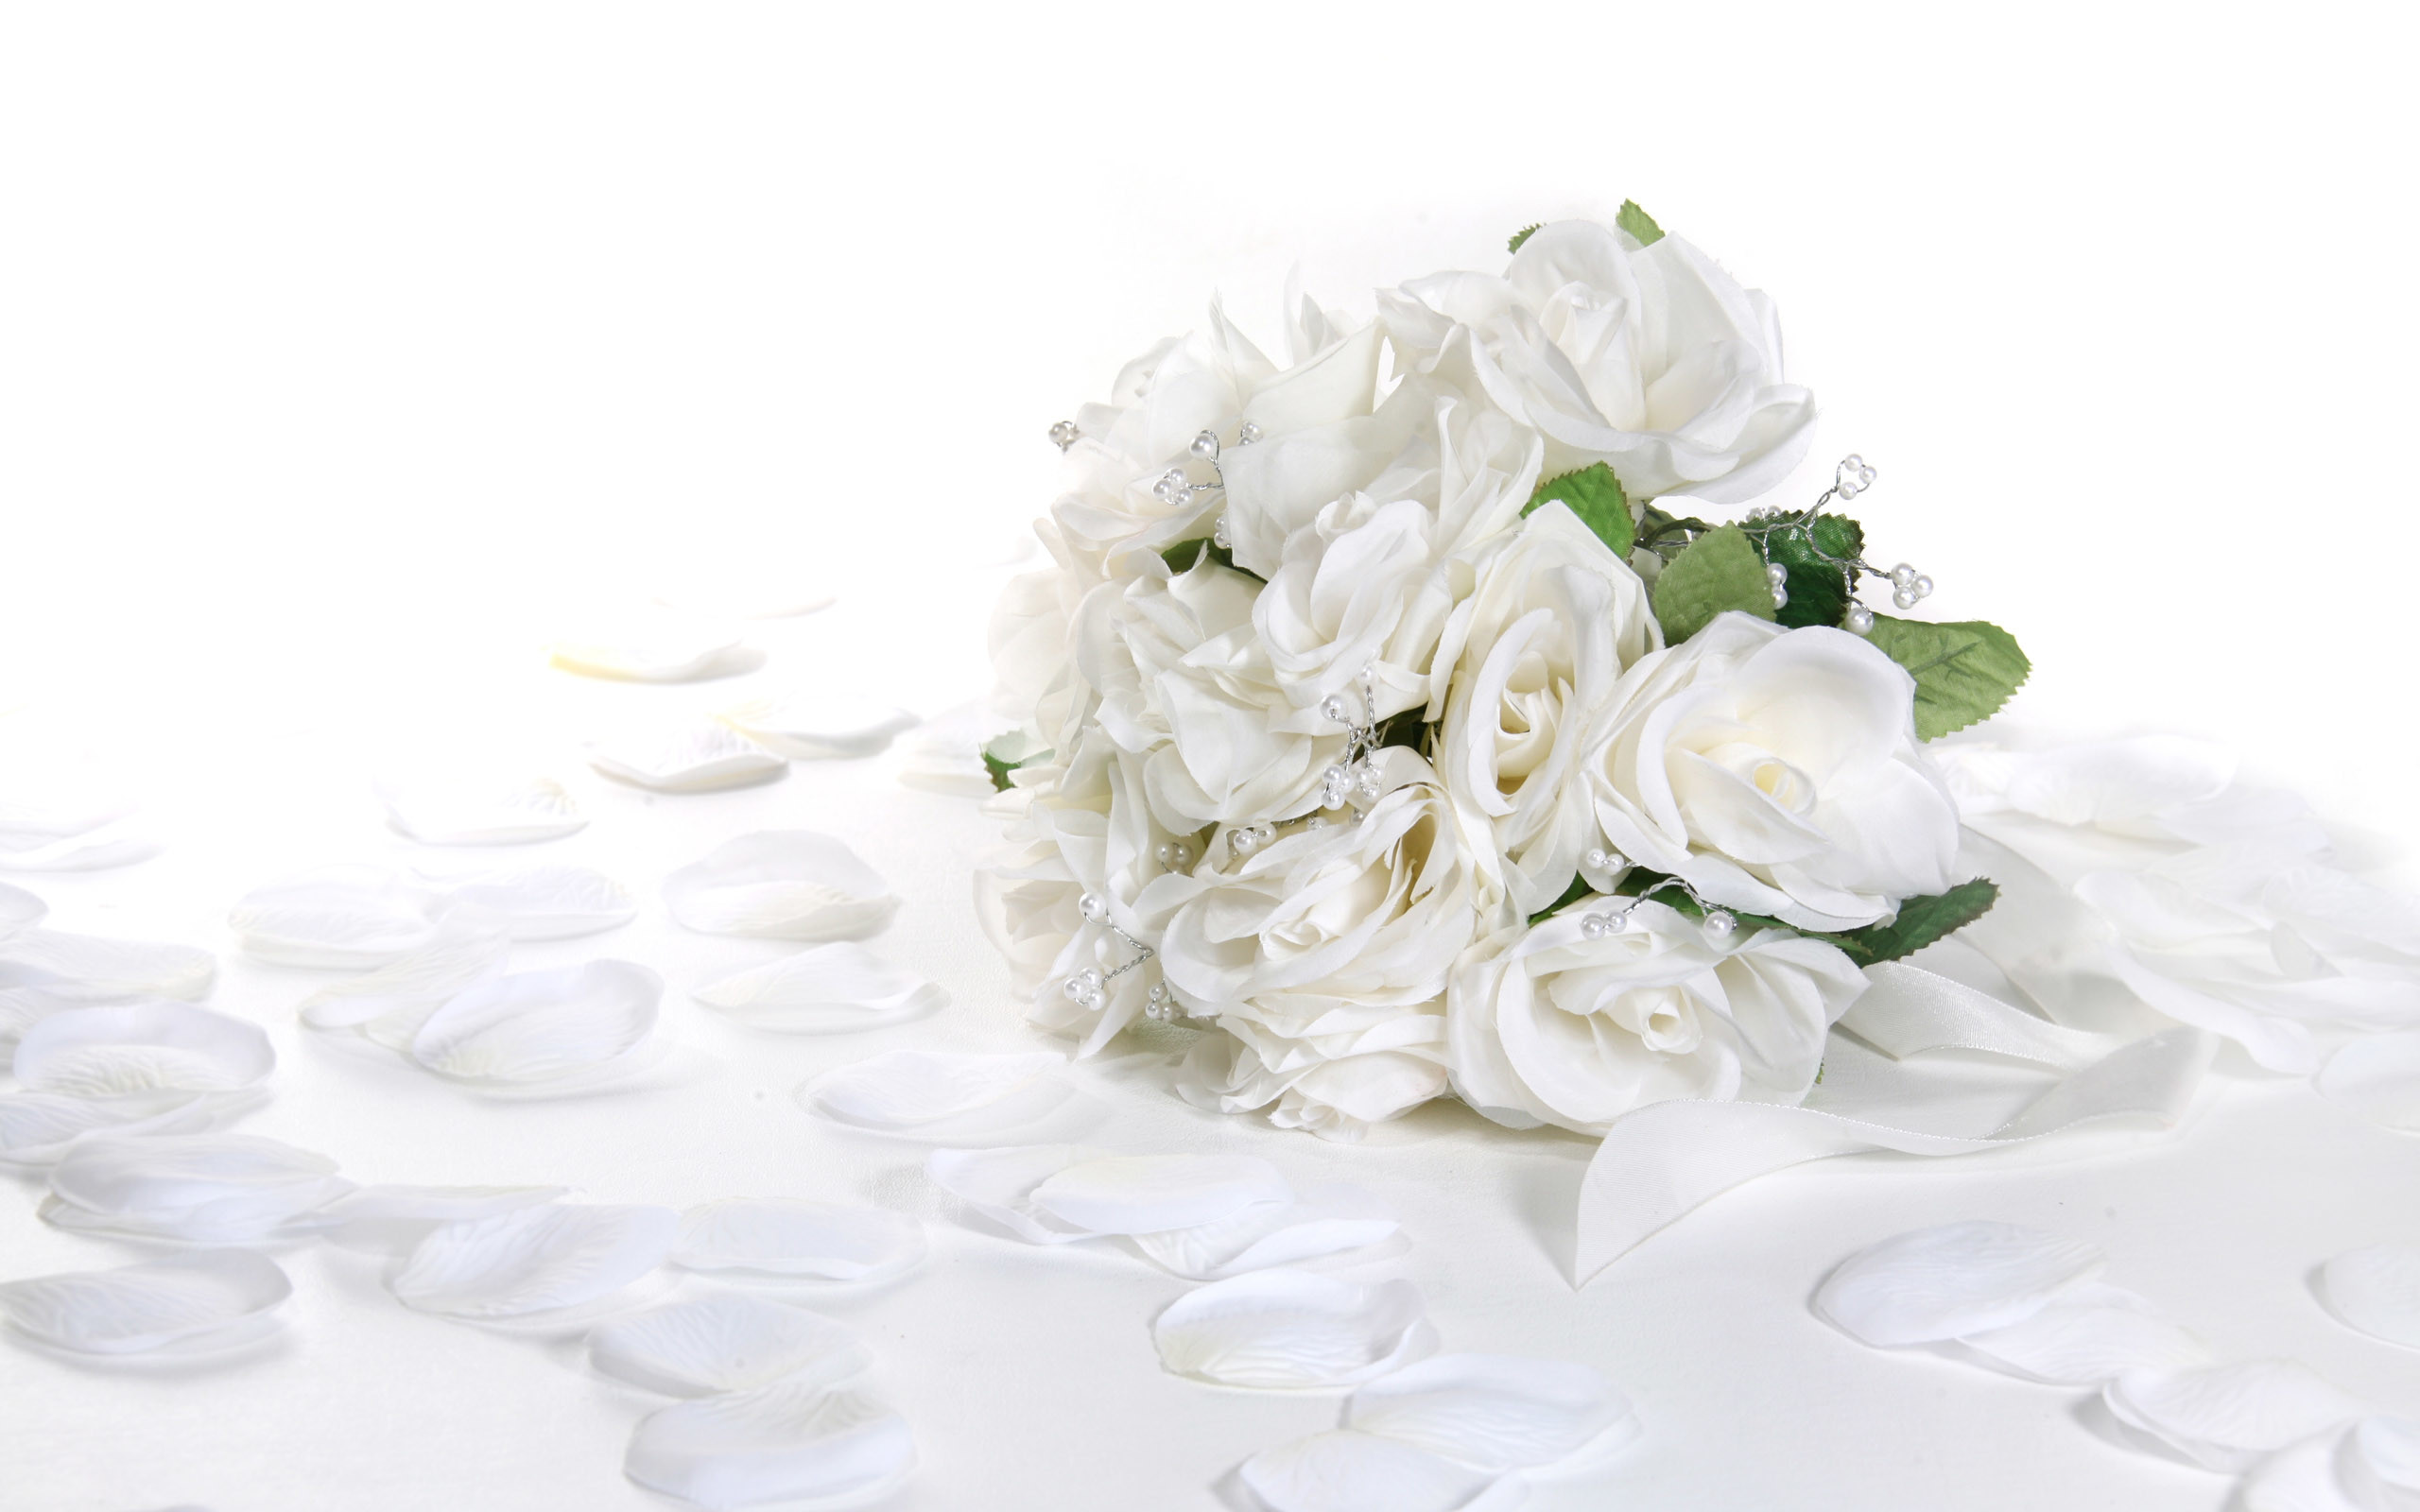 Res: 2560x1600, Romantic White Rose Flower Wedding Wallpaper High Definition Wallpaper